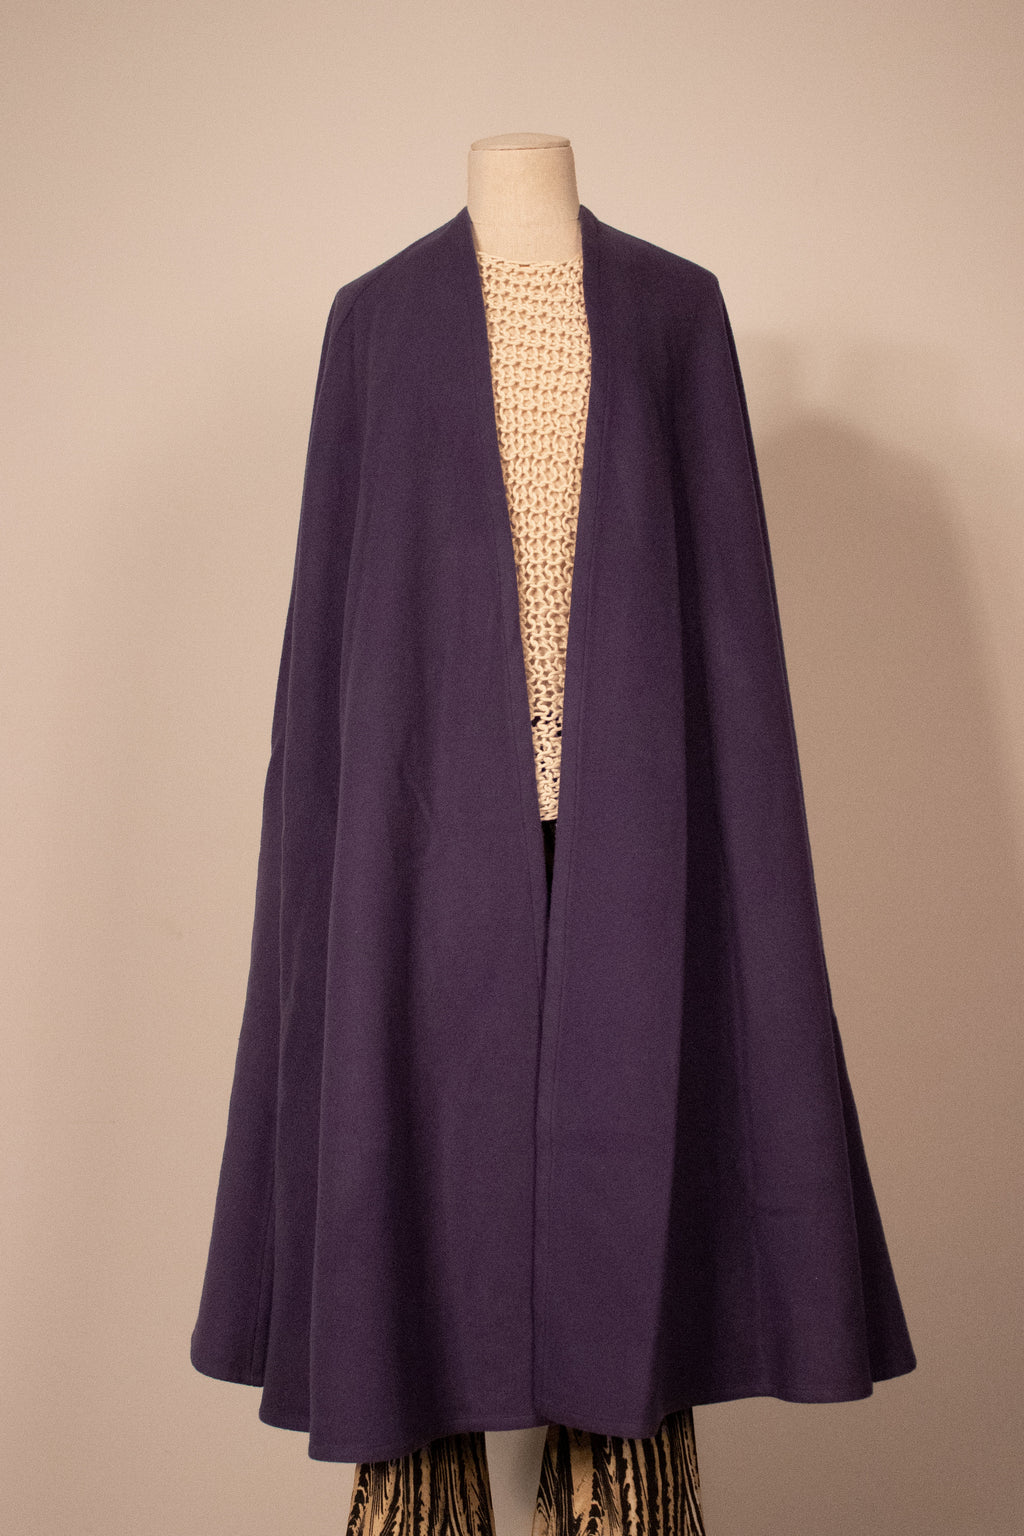 YSL purple wool cape